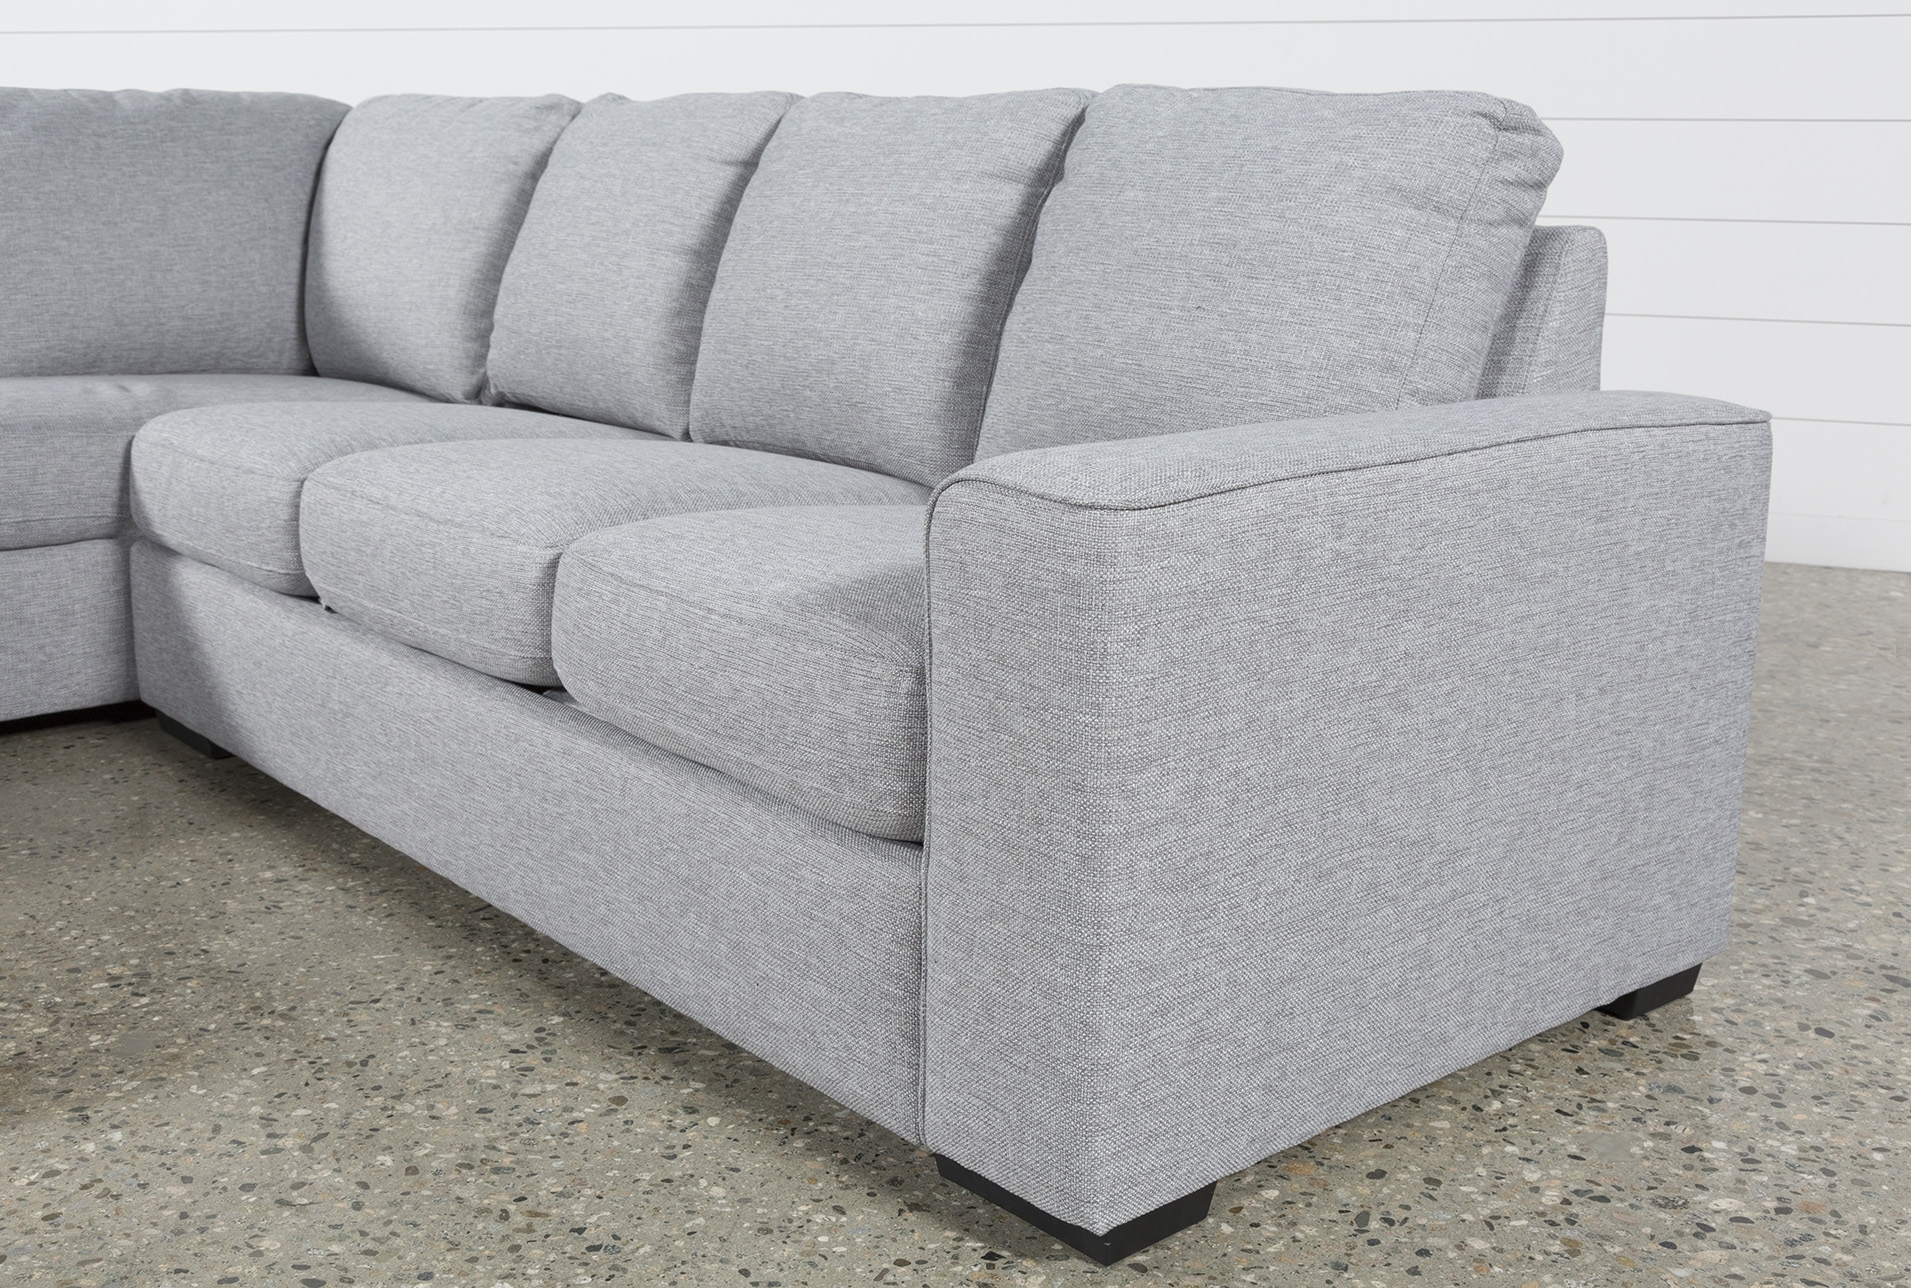 Lucy Grey 2 Piece Sectional W/laf Chaise | Products Within Lucy Dark Grey 2 Piece Sleeper Sectionals With Raf Chaise (View 15 of 25)